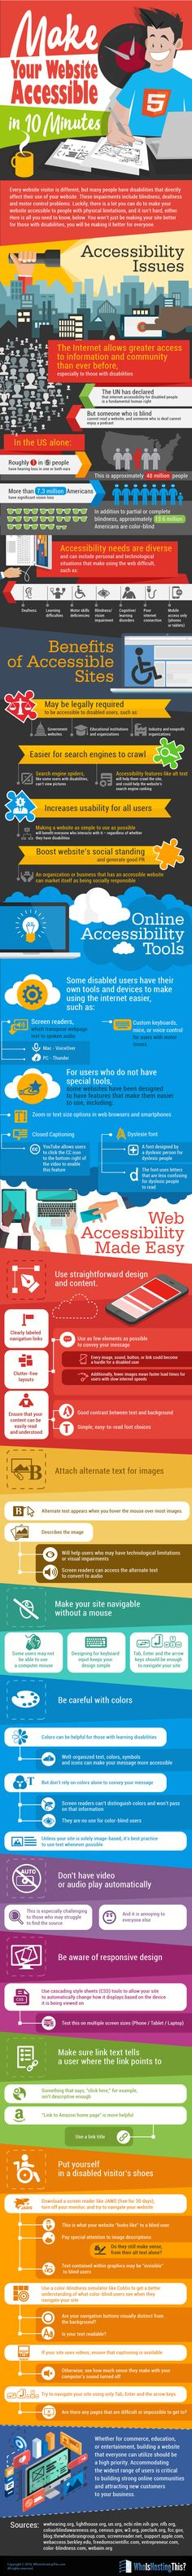 Make Your Website Accessible in 10 Minutes #Infographic #Internet #WebDevelopment